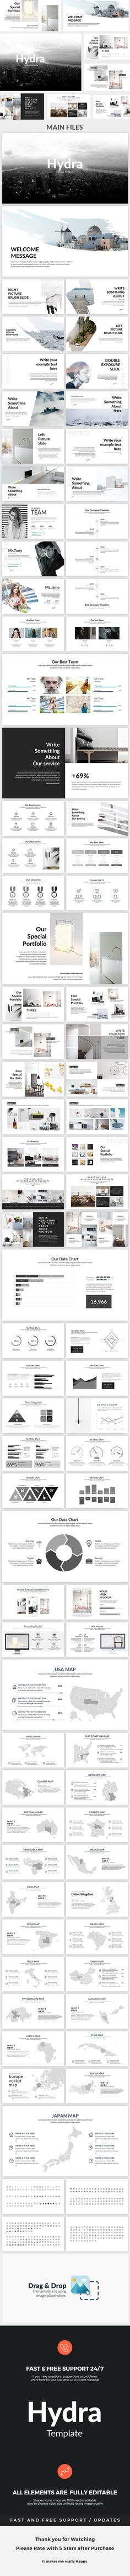 Hydra - Creative Powerpoint Template. Download here…